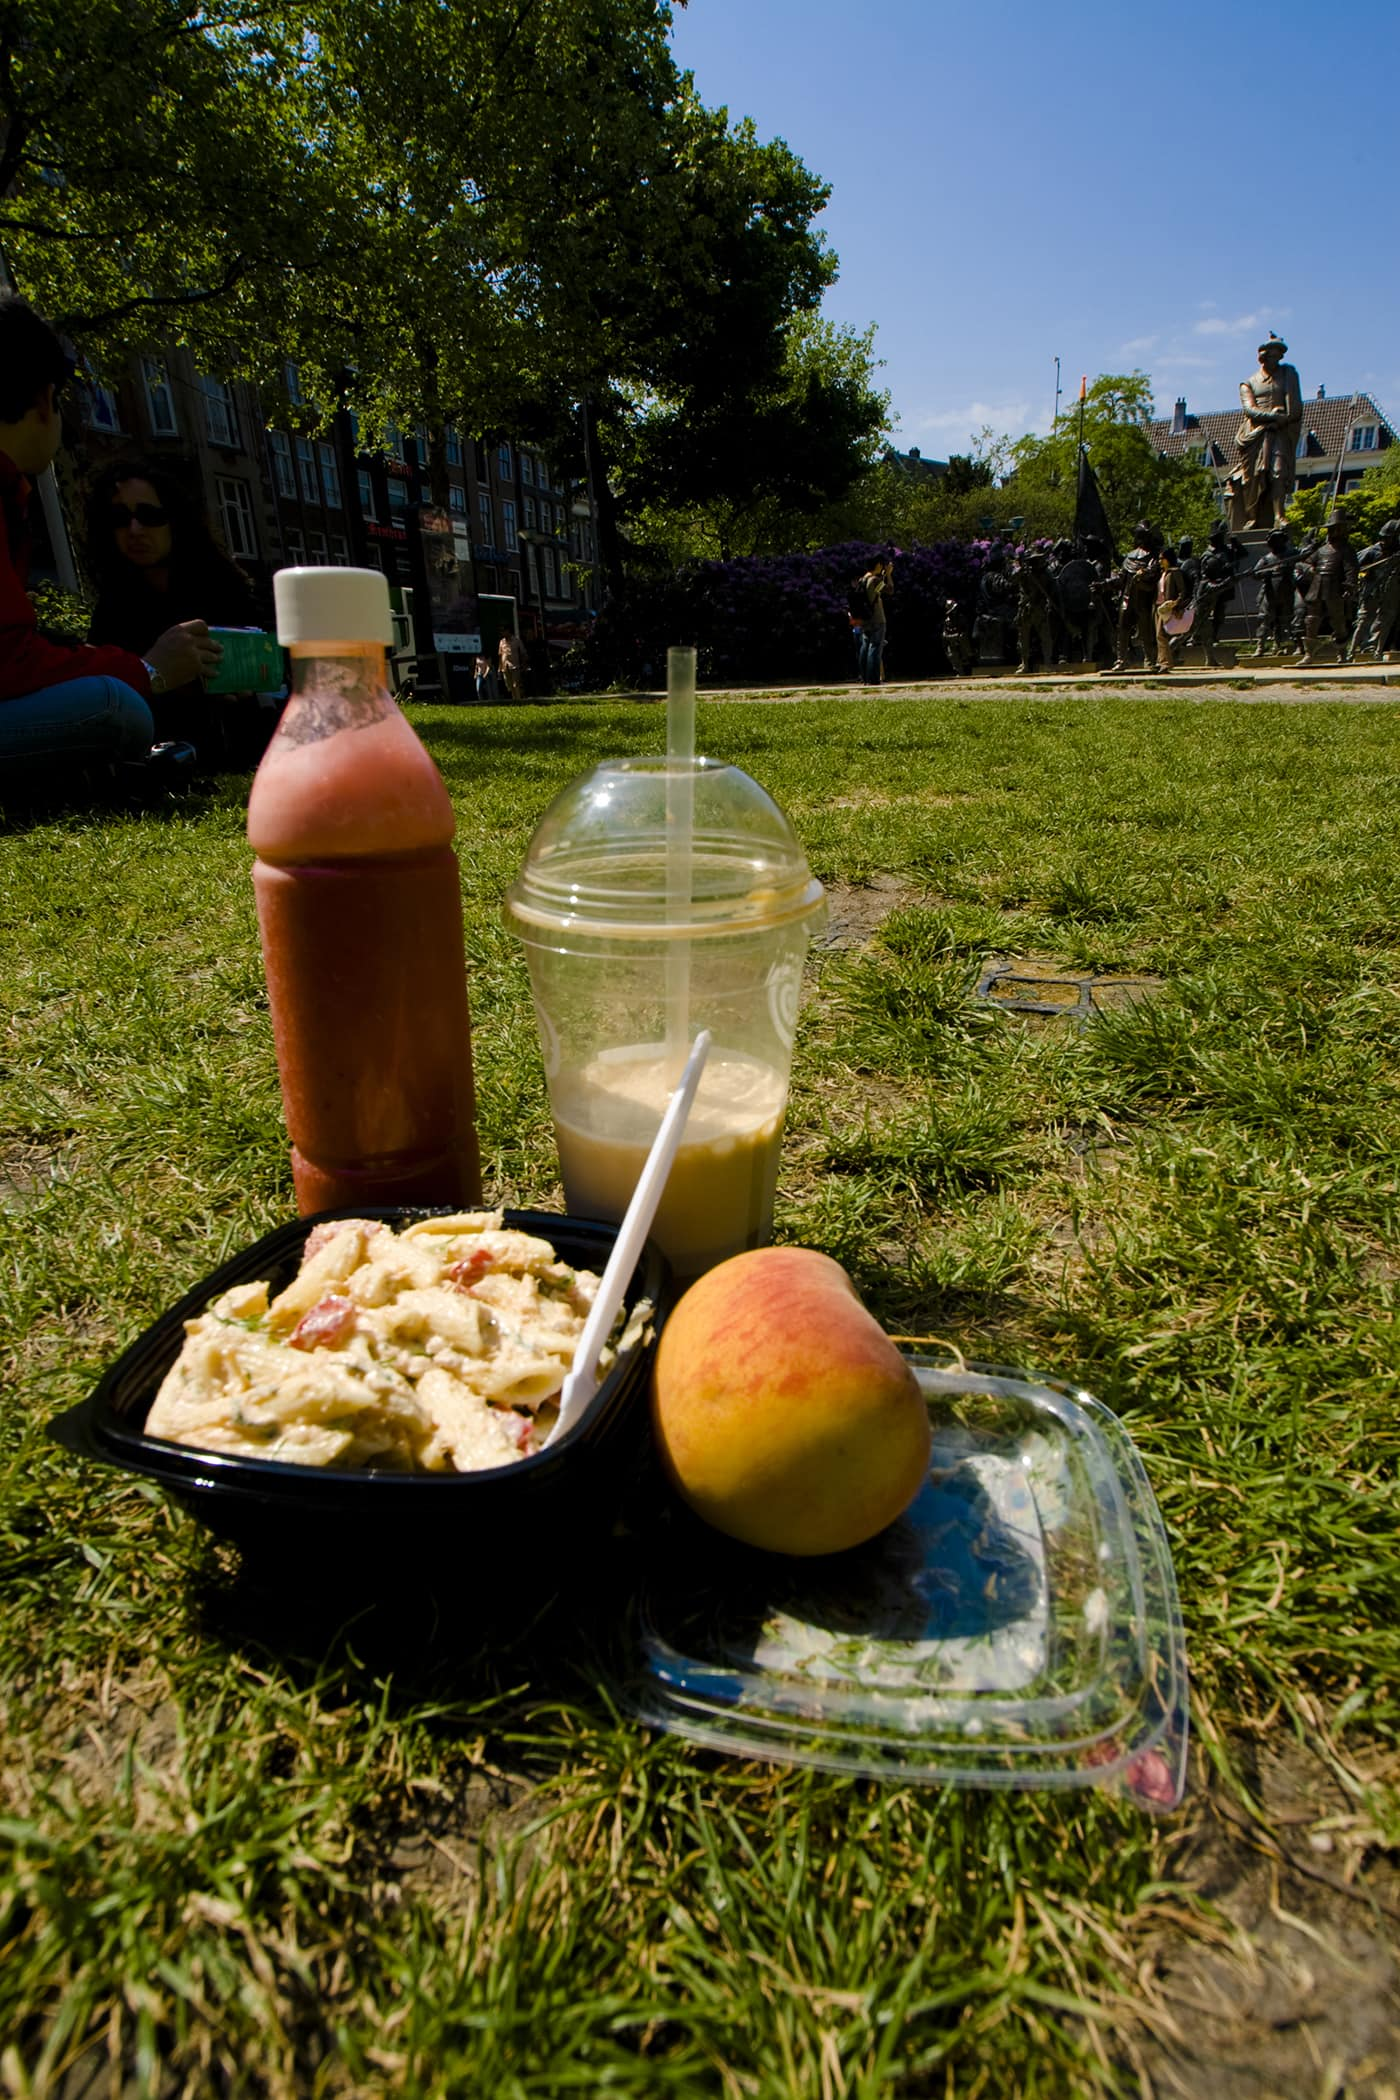 Lunch in a park in Amsterdam.